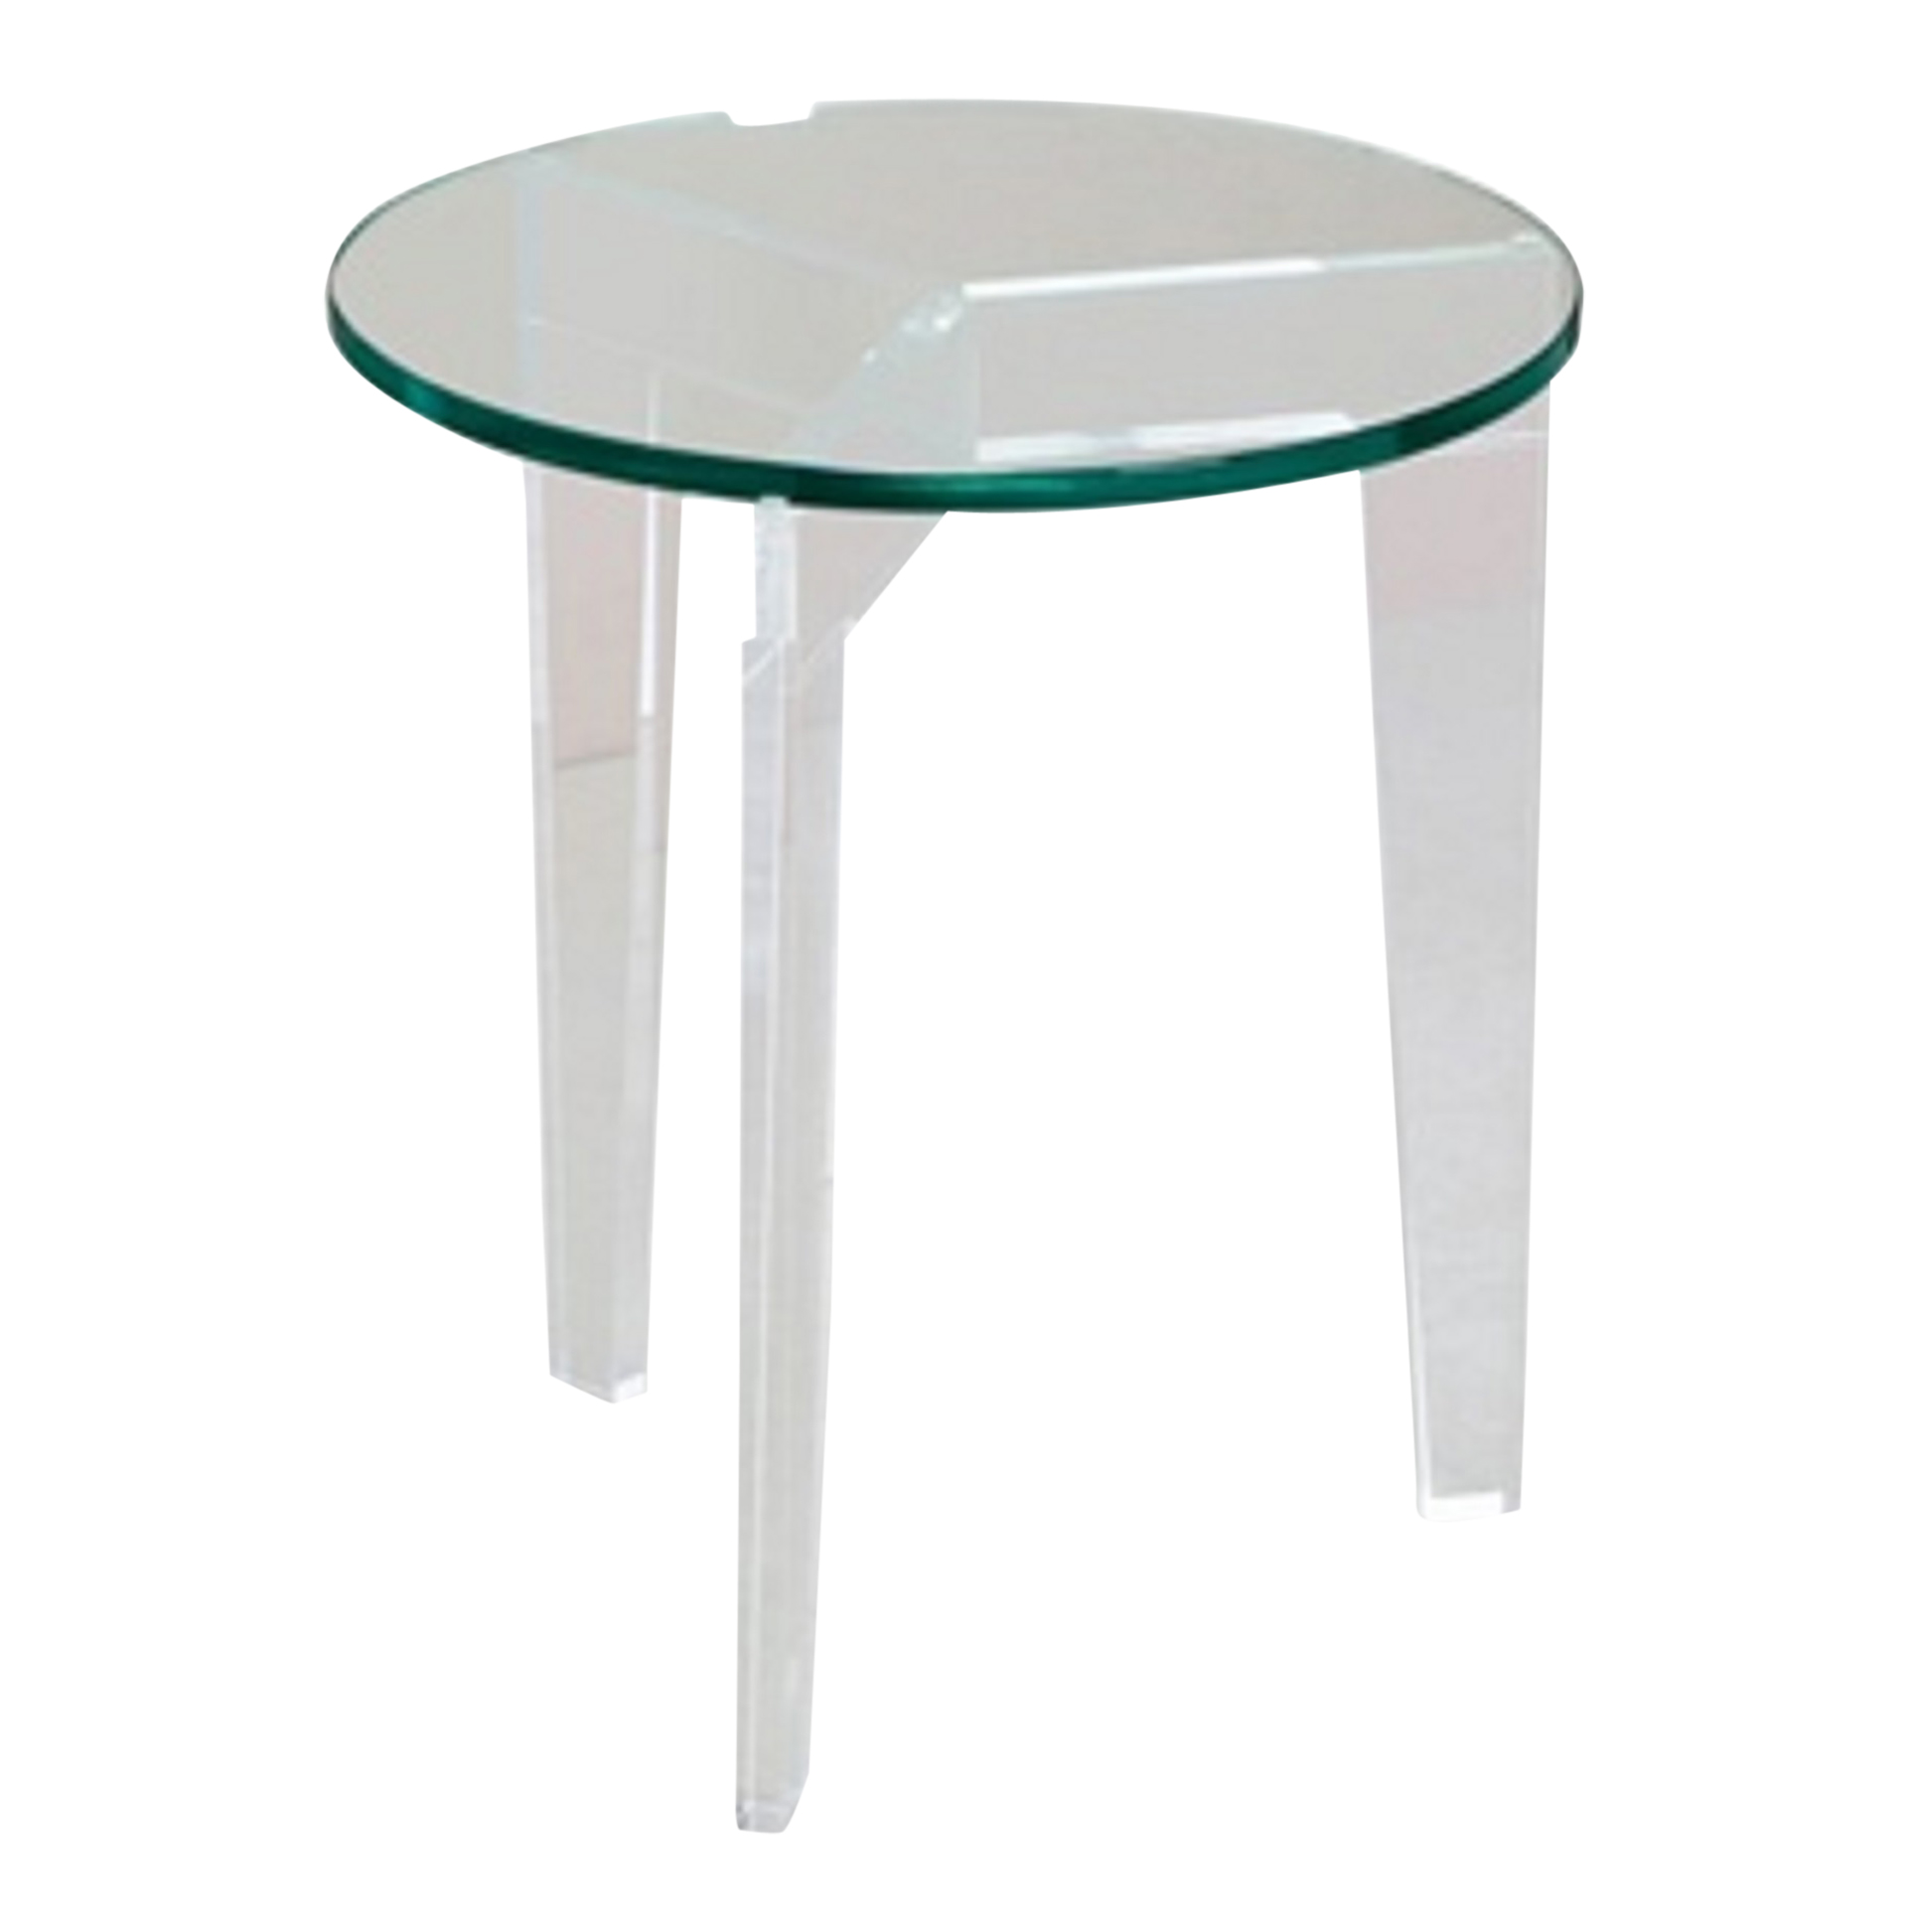 acrylic end table ashley accent tables clear zella small screw wooden legs home goods argos garden and chairs mango dining seaside themed lamps tablecloth factory glass lamp pier